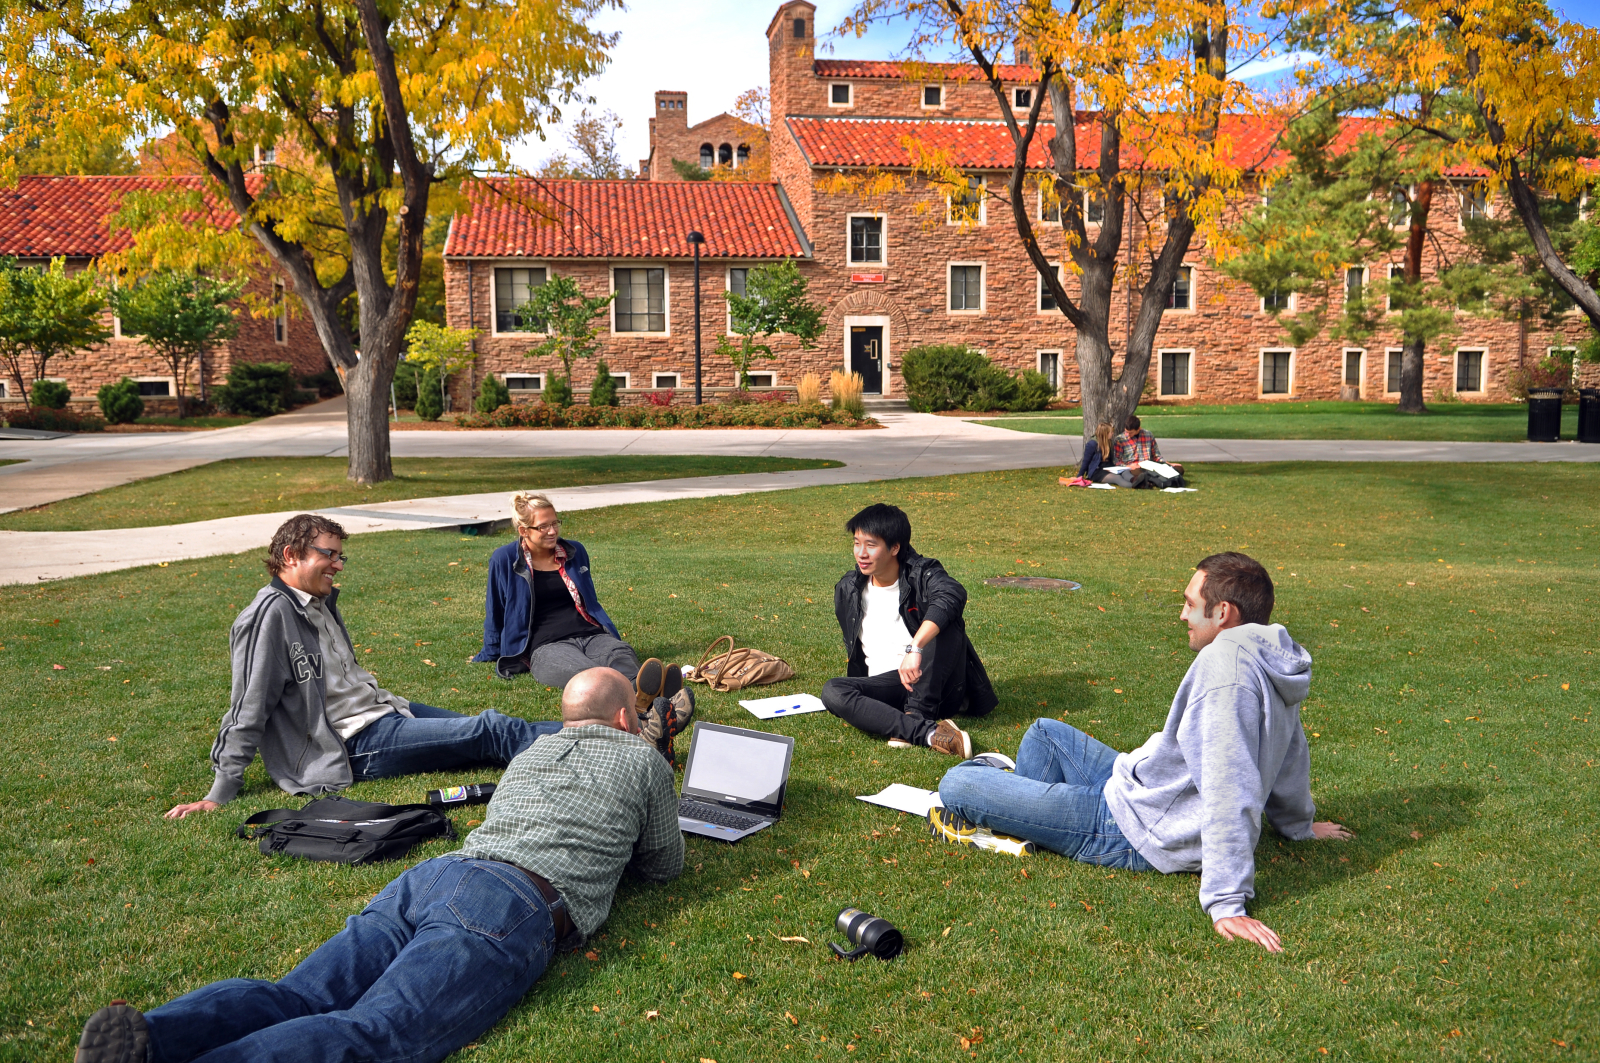 Five students study on the grass near the dorms